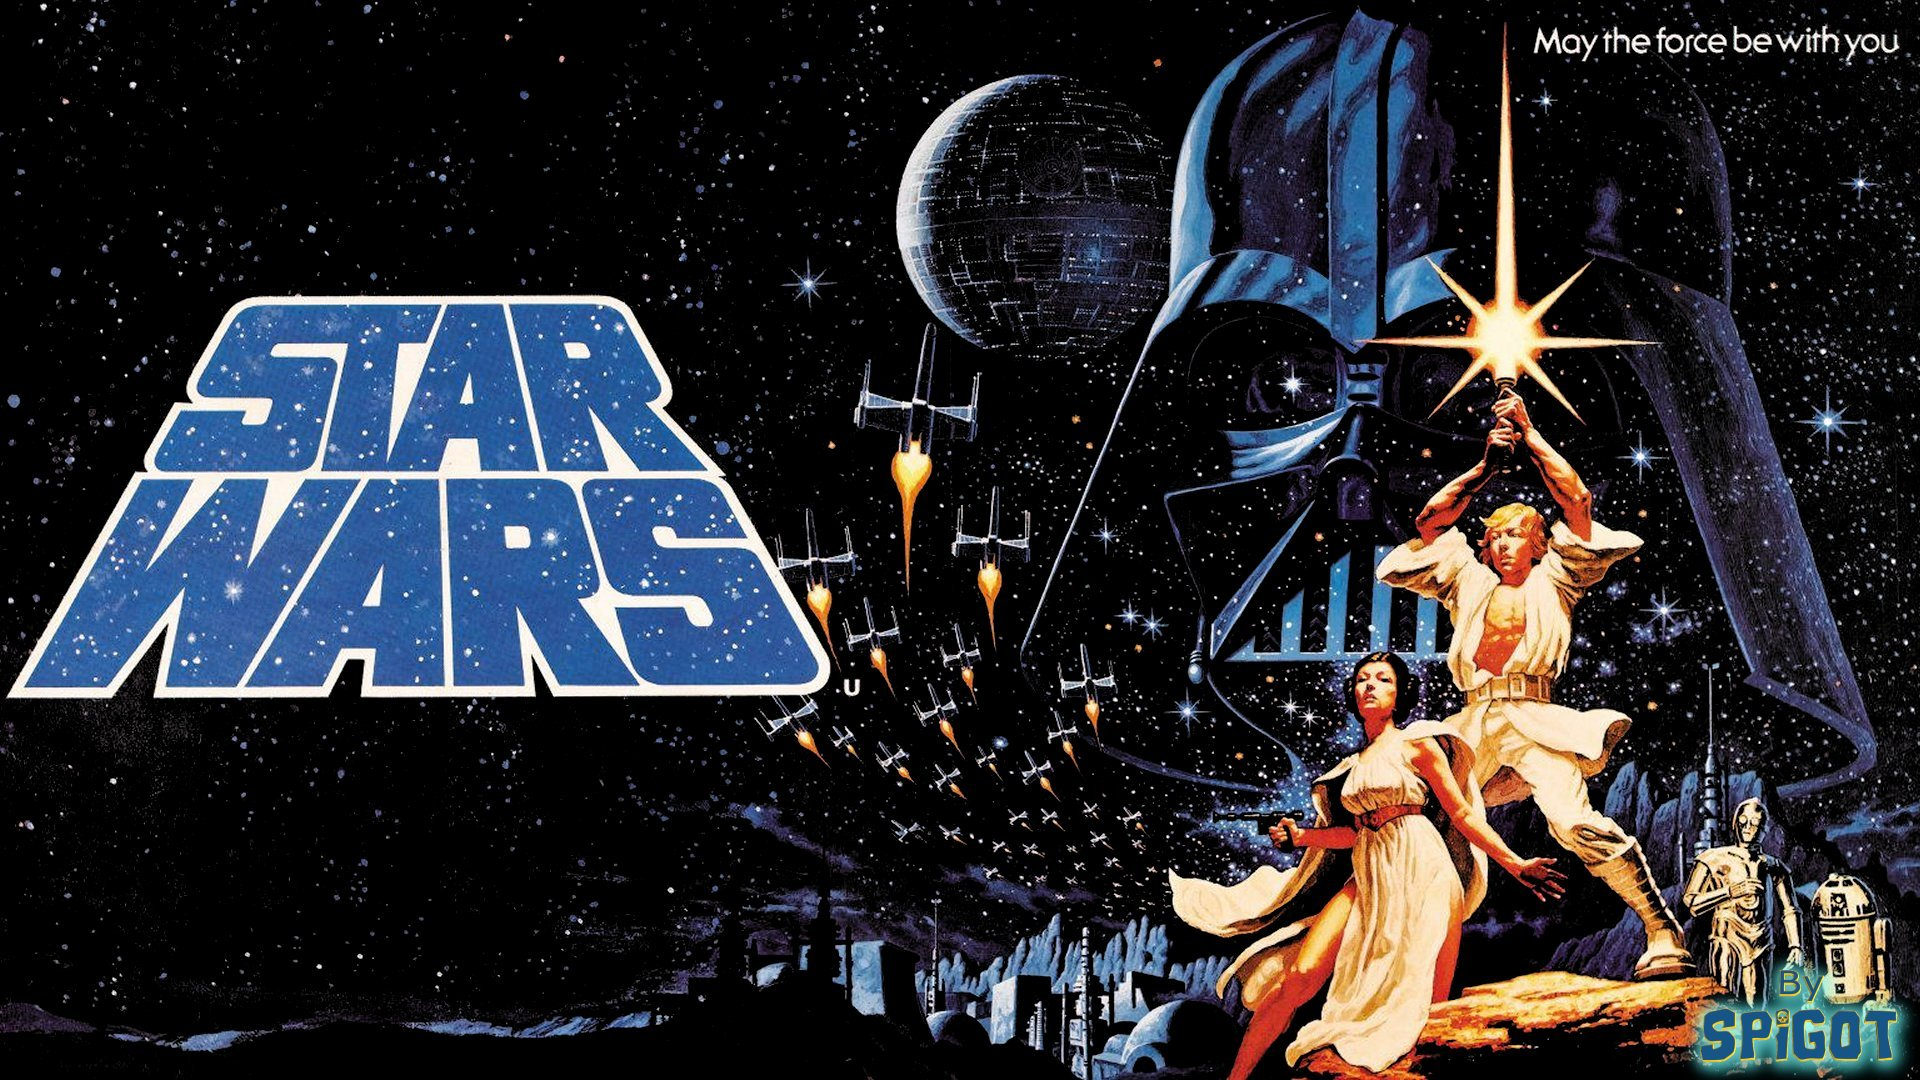 Star Wars George Spigots Blog 1920x1080